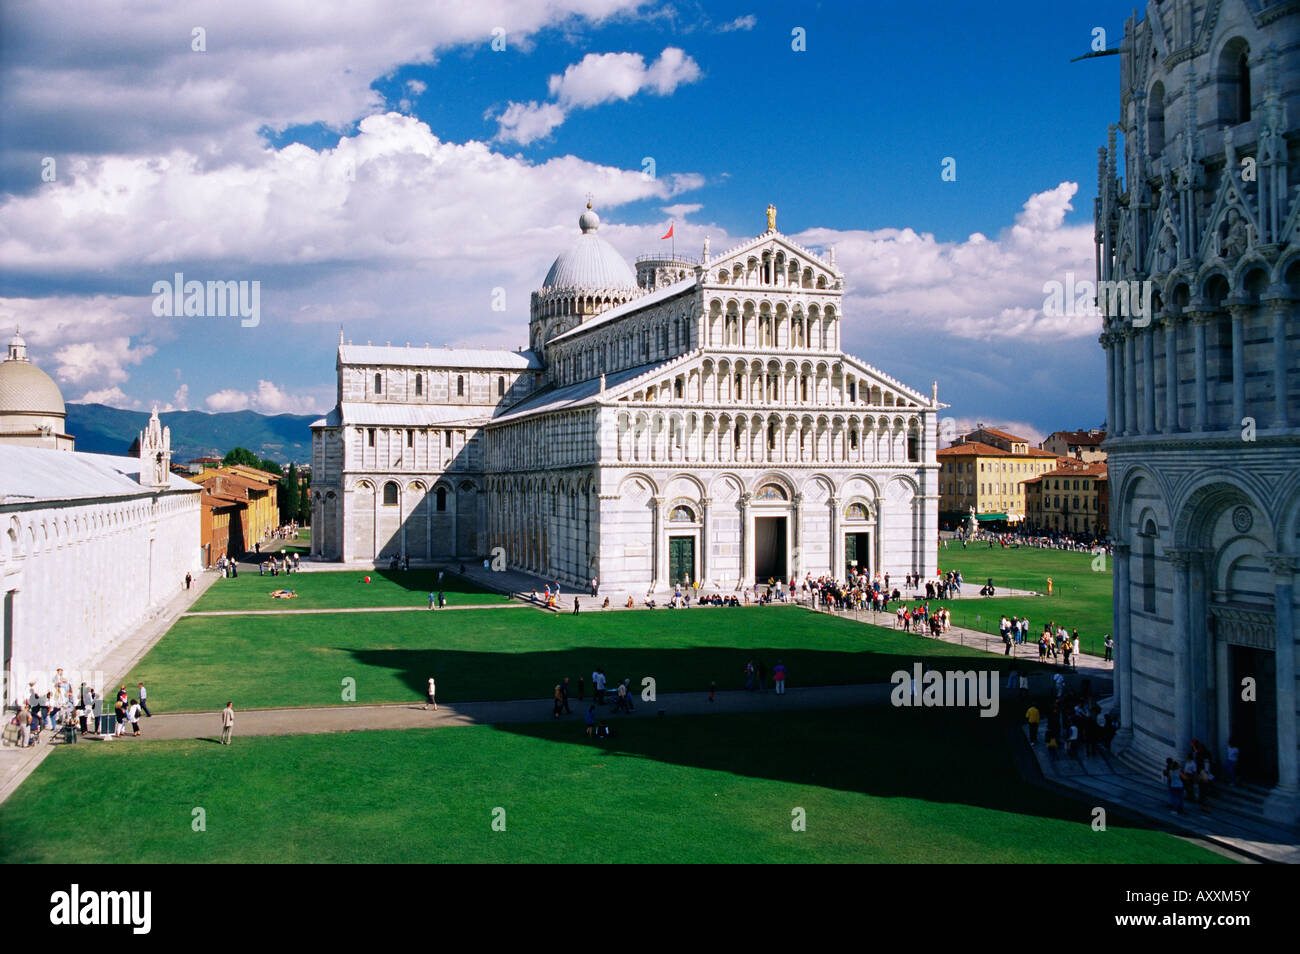 The Duomo (cathedral), Piazza del Duomo, UNESCO World Heritage Site, Pisa, Tuscany, Italy, Europe - Stock Image